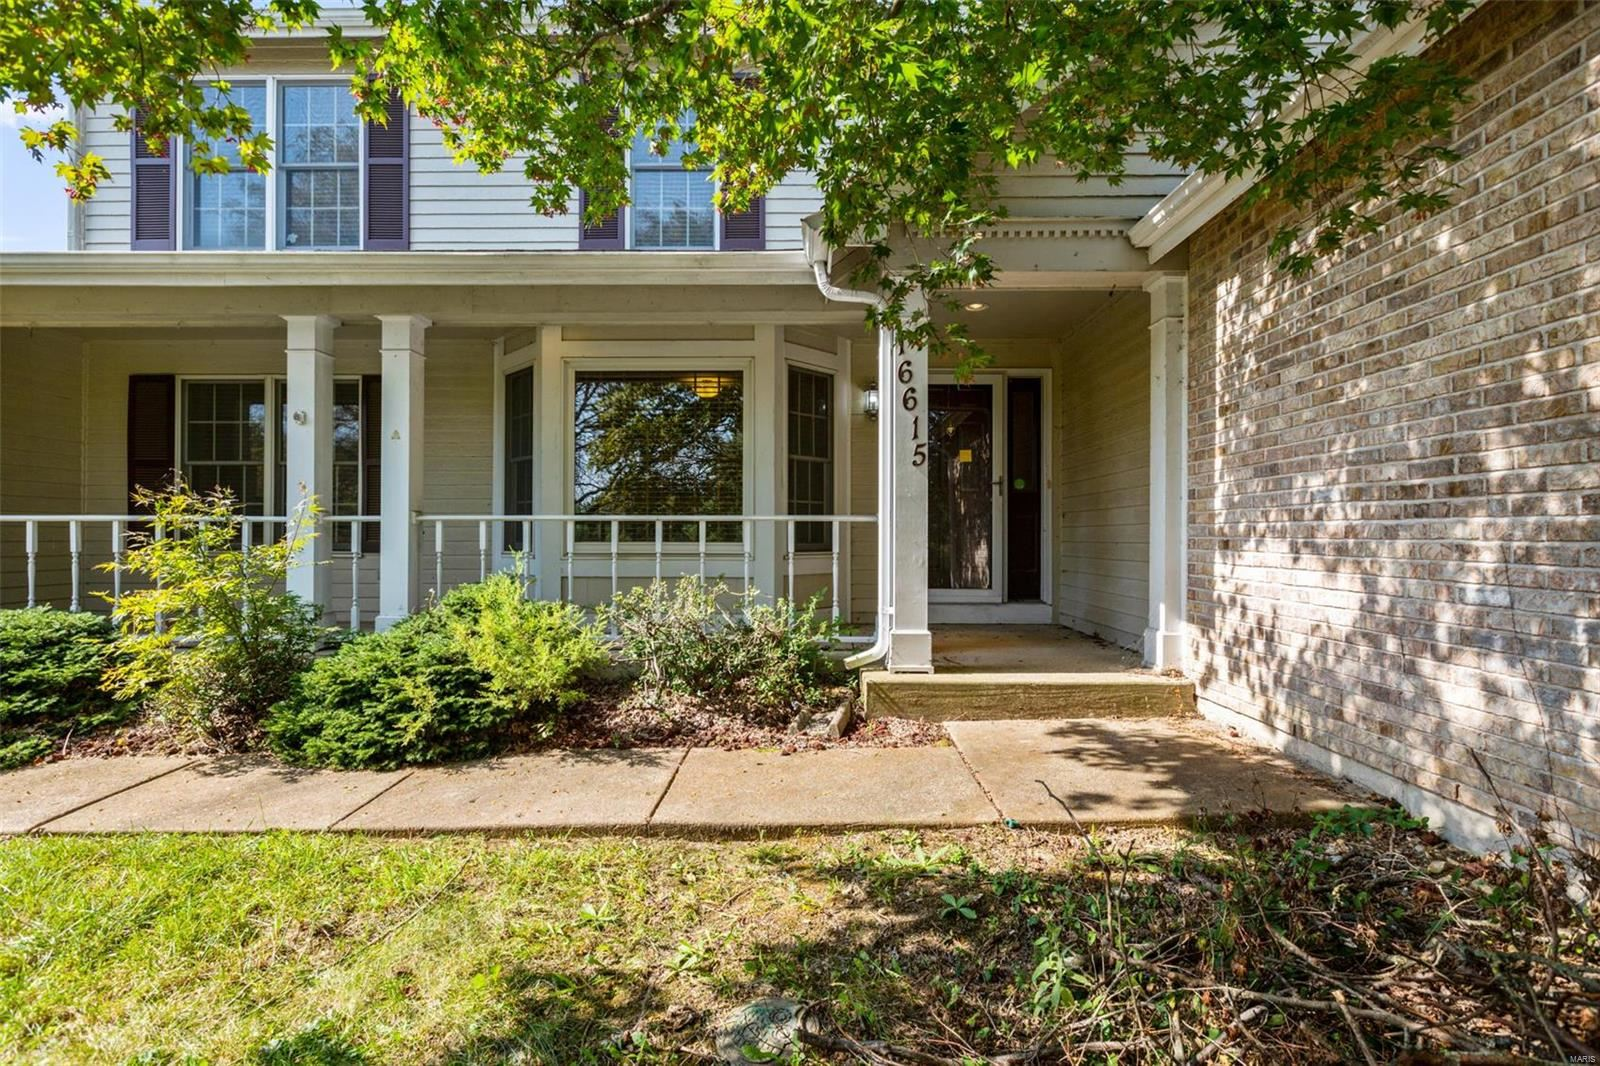 16615 Evergreen Forest, Wildwood, MO 63011 - MLS#: 21071108